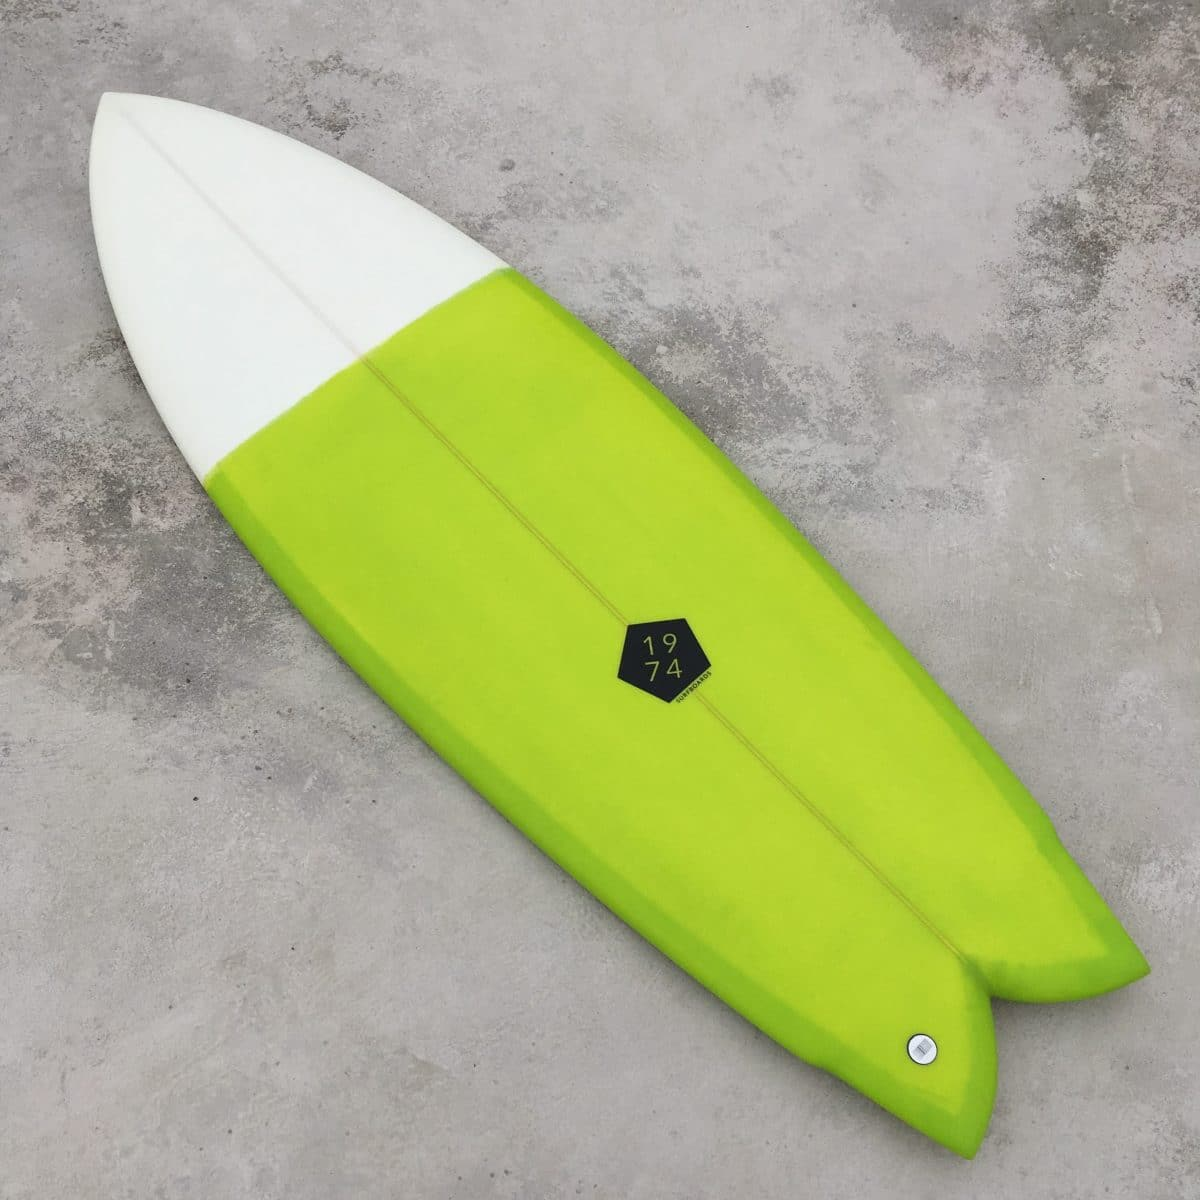 Prancha de surf fish retro quadriquilha 1974 Surfboards